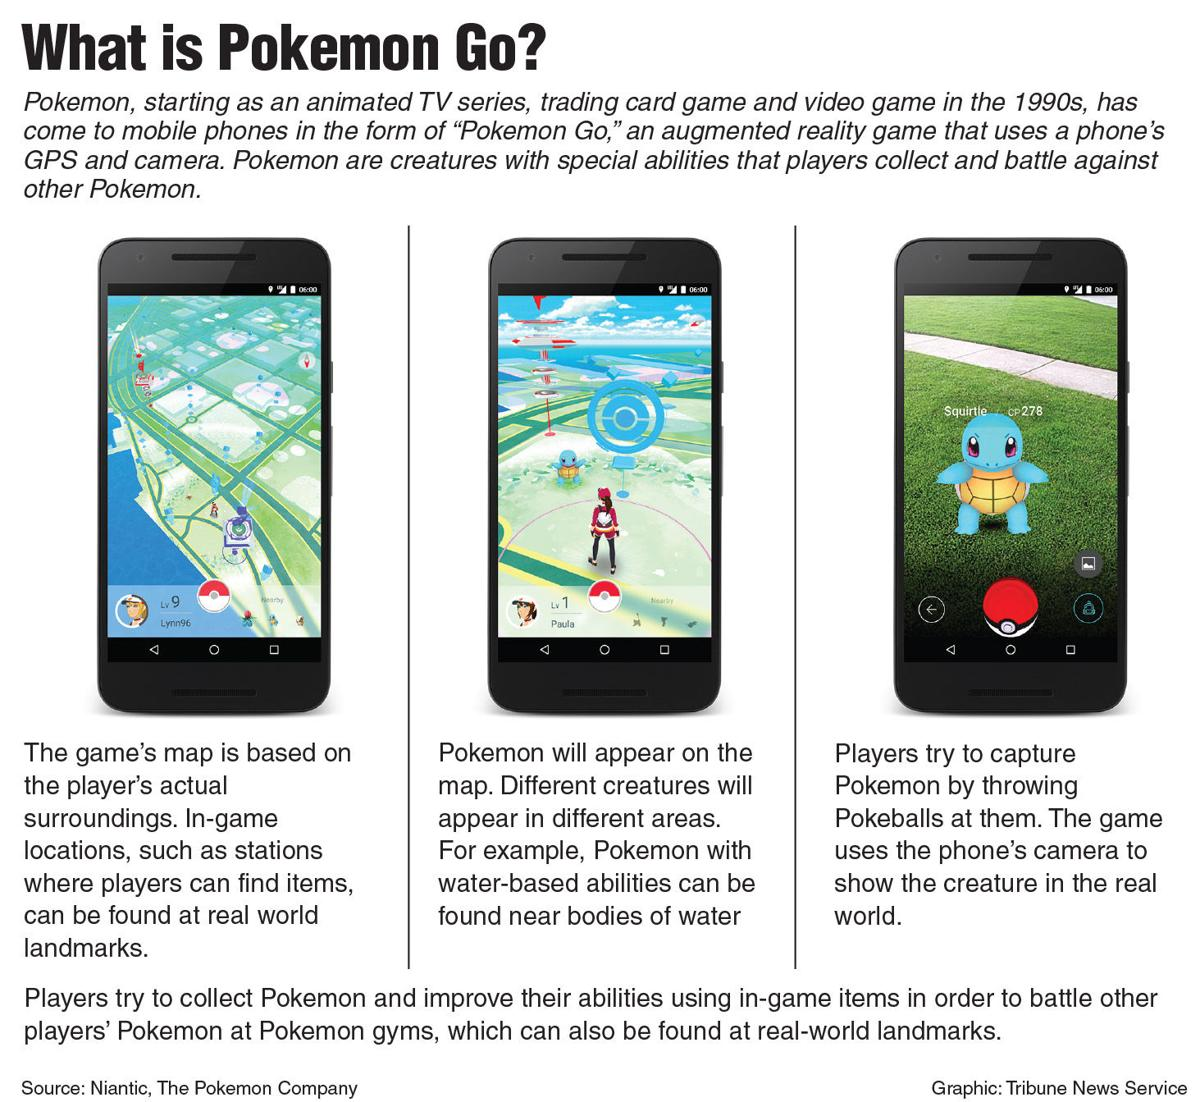 Pokemania catches hold on campus | News | alestlelive.com on